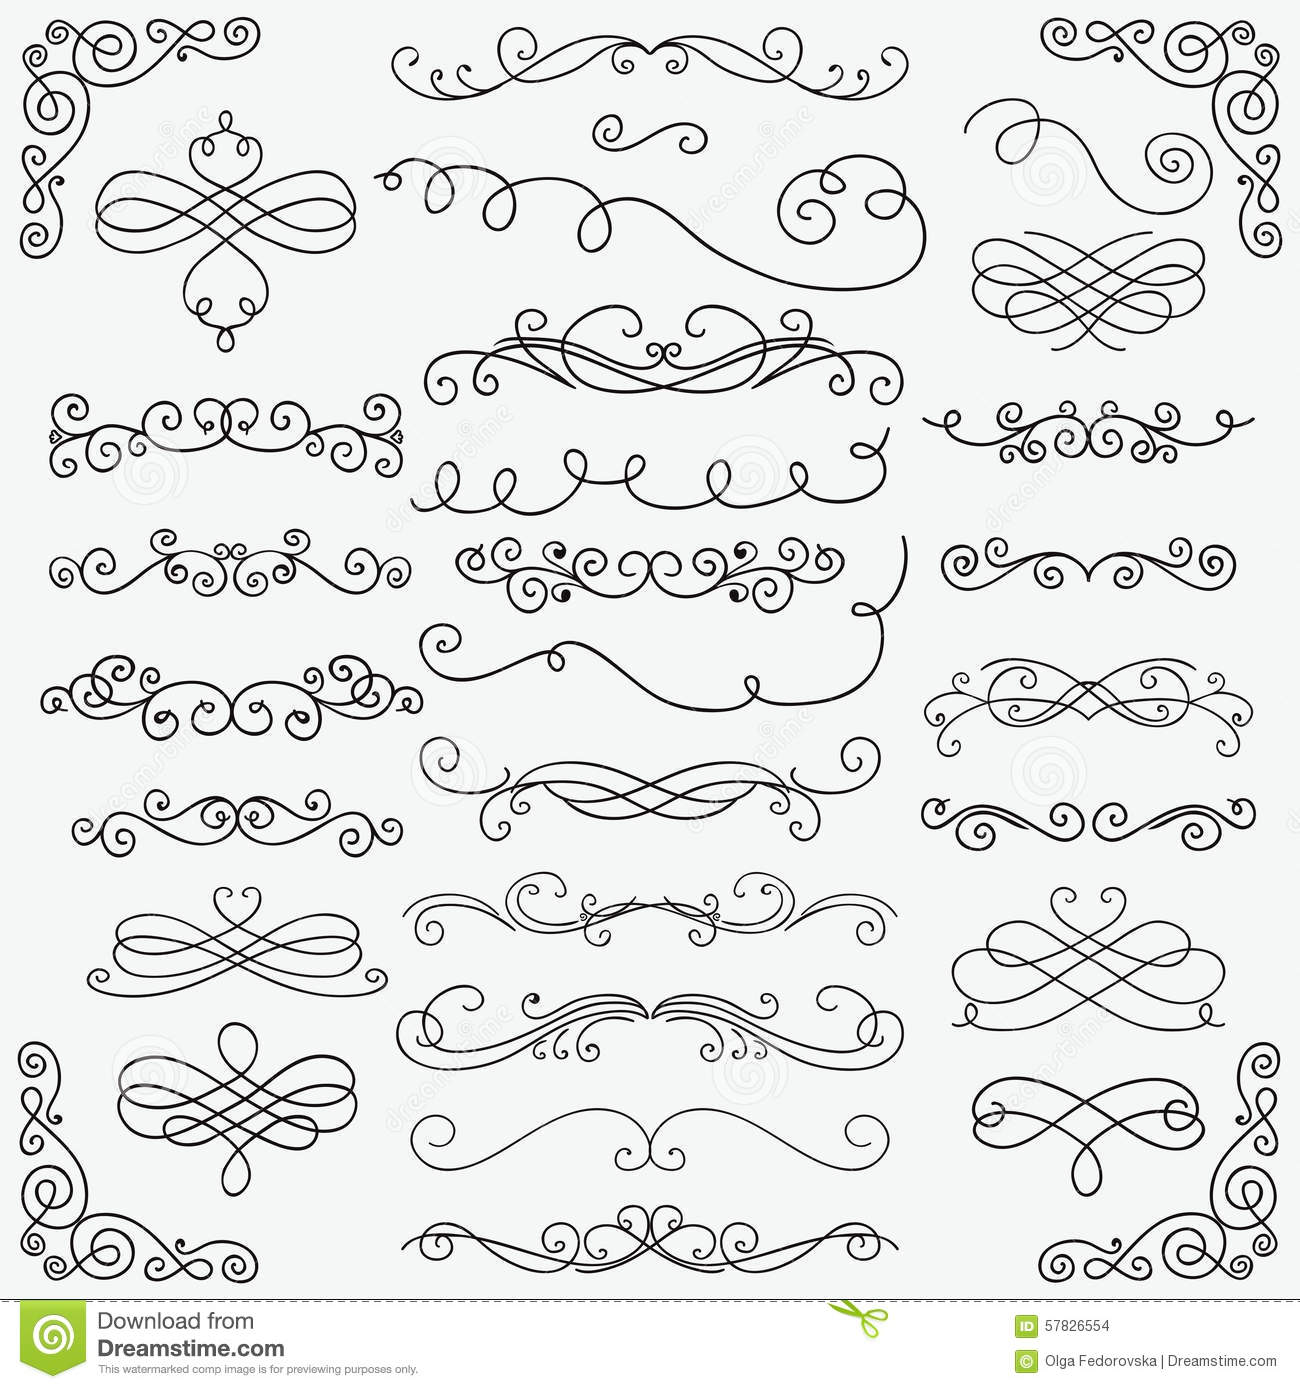 vector black doodle hand drawn swirls collection stock